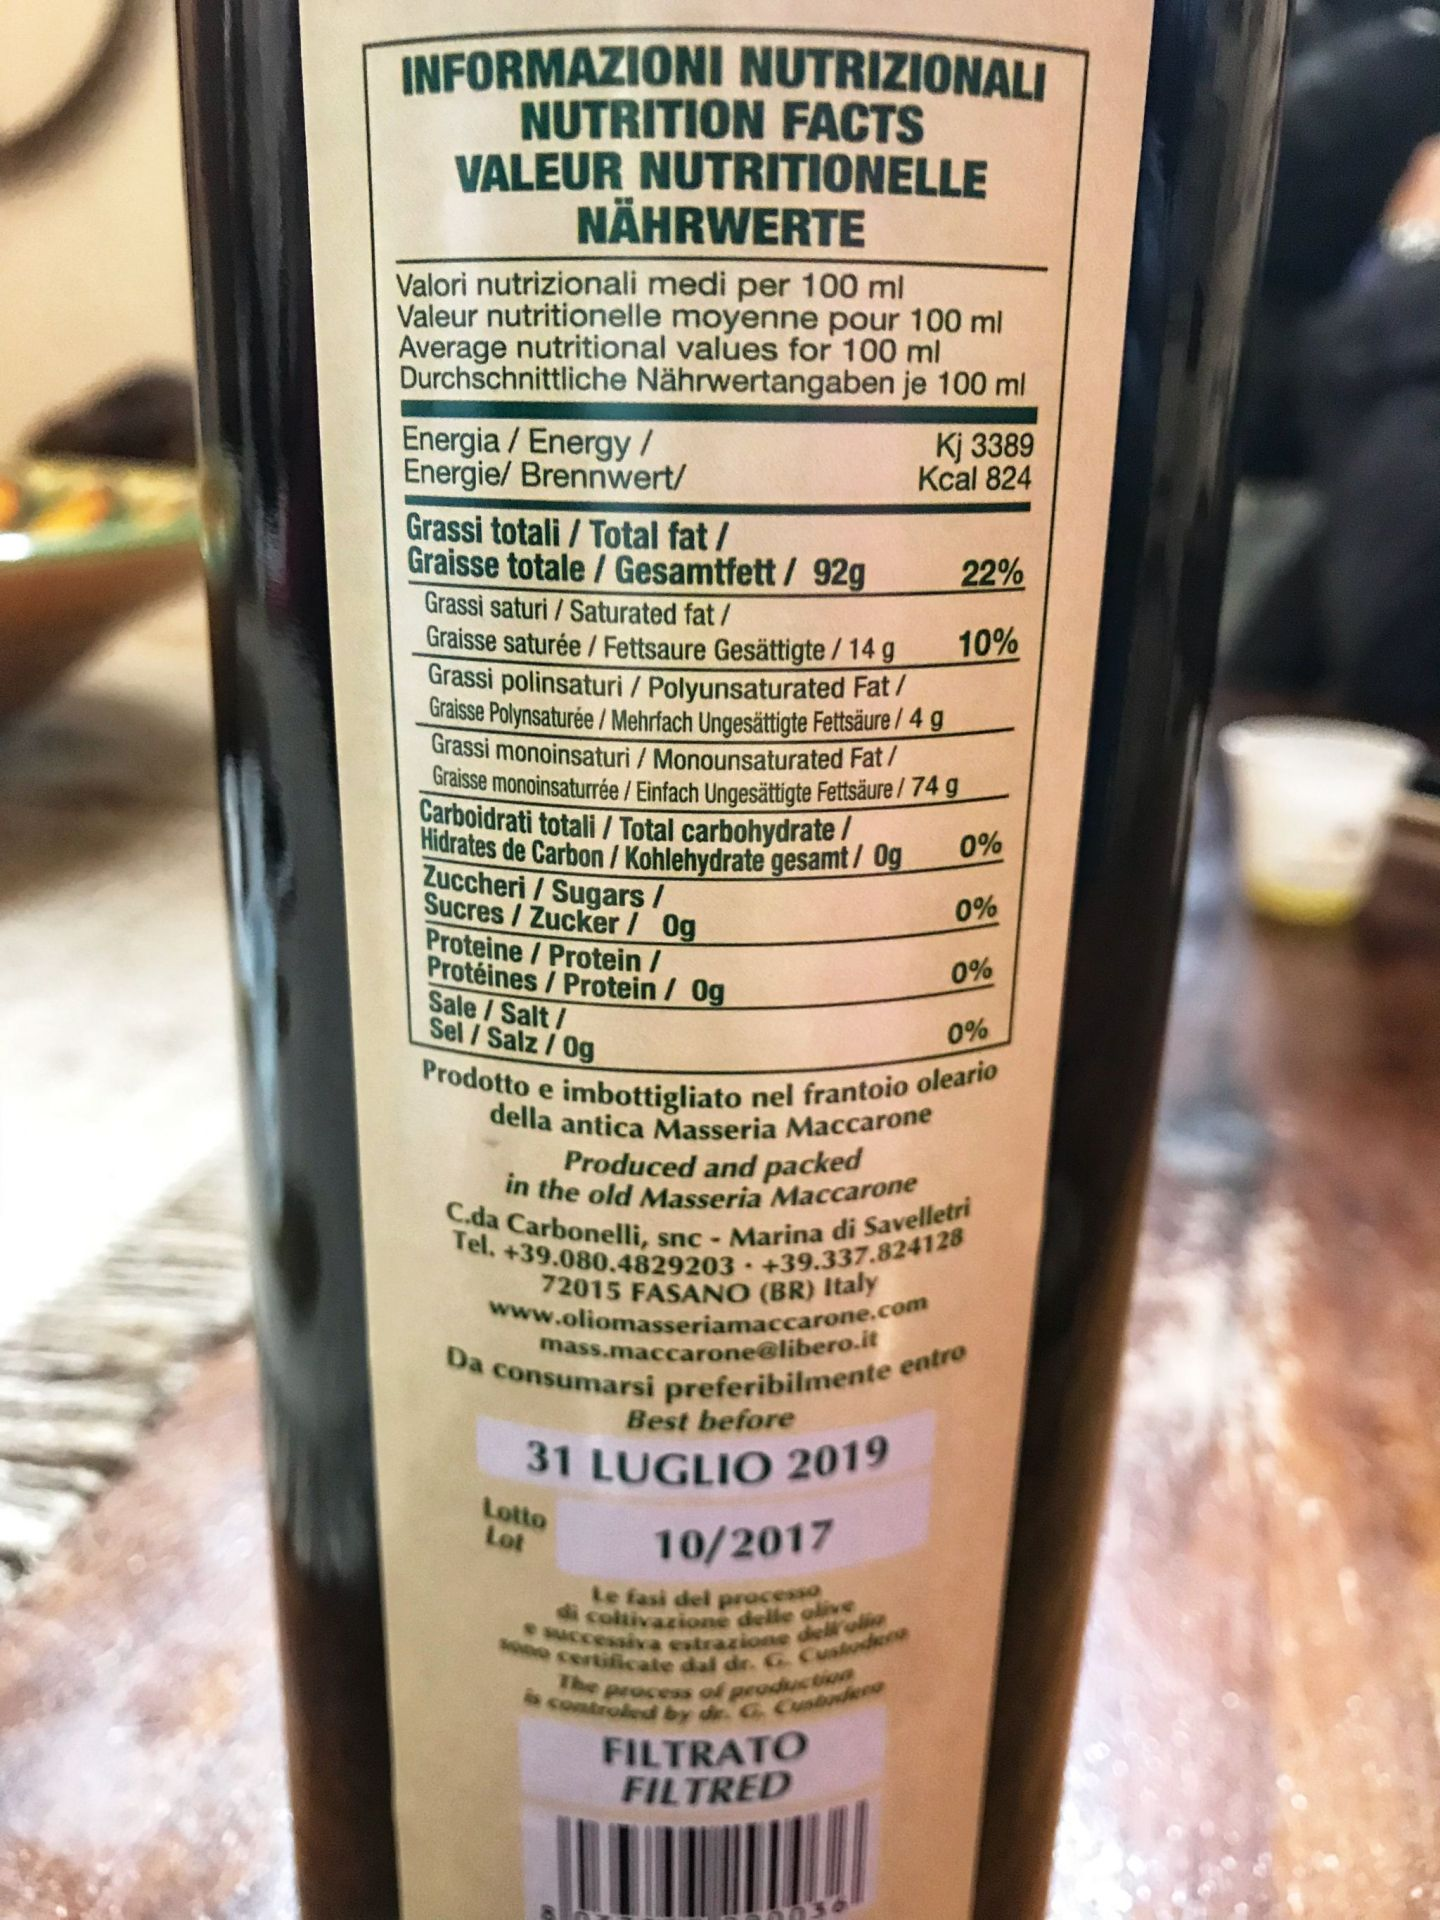 Italian Extra Virgin Olive Oil Ingredients and Packgaing label